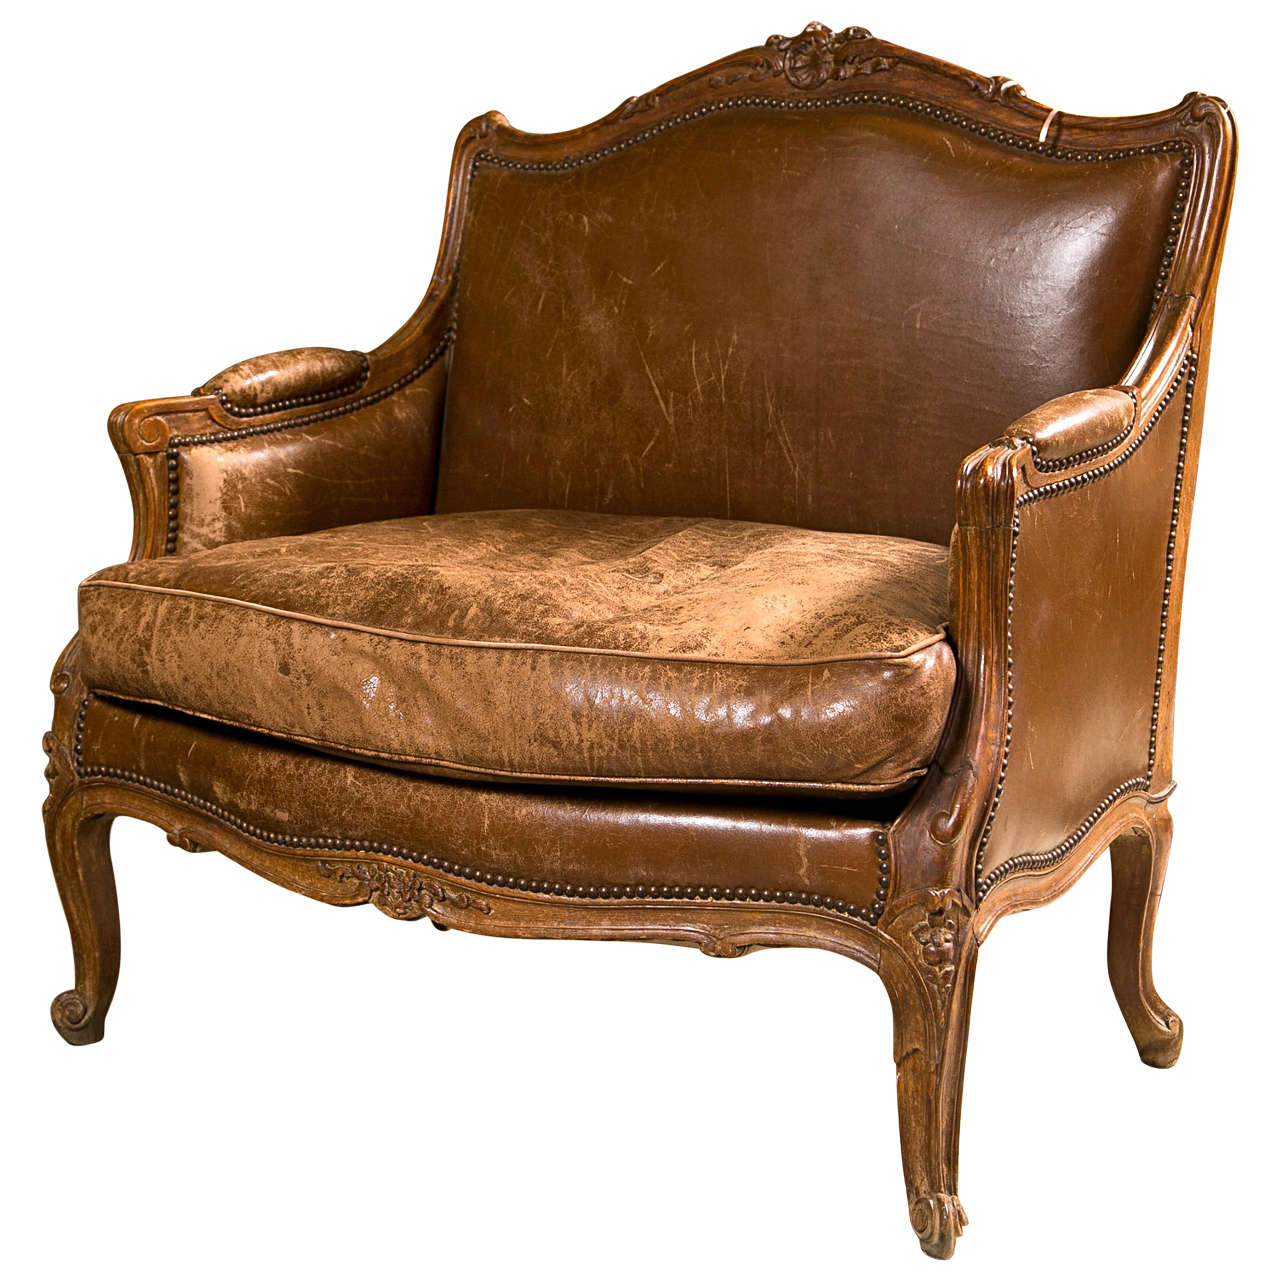 Antique bergere chair - French Provincial Style Bergere Chair 1